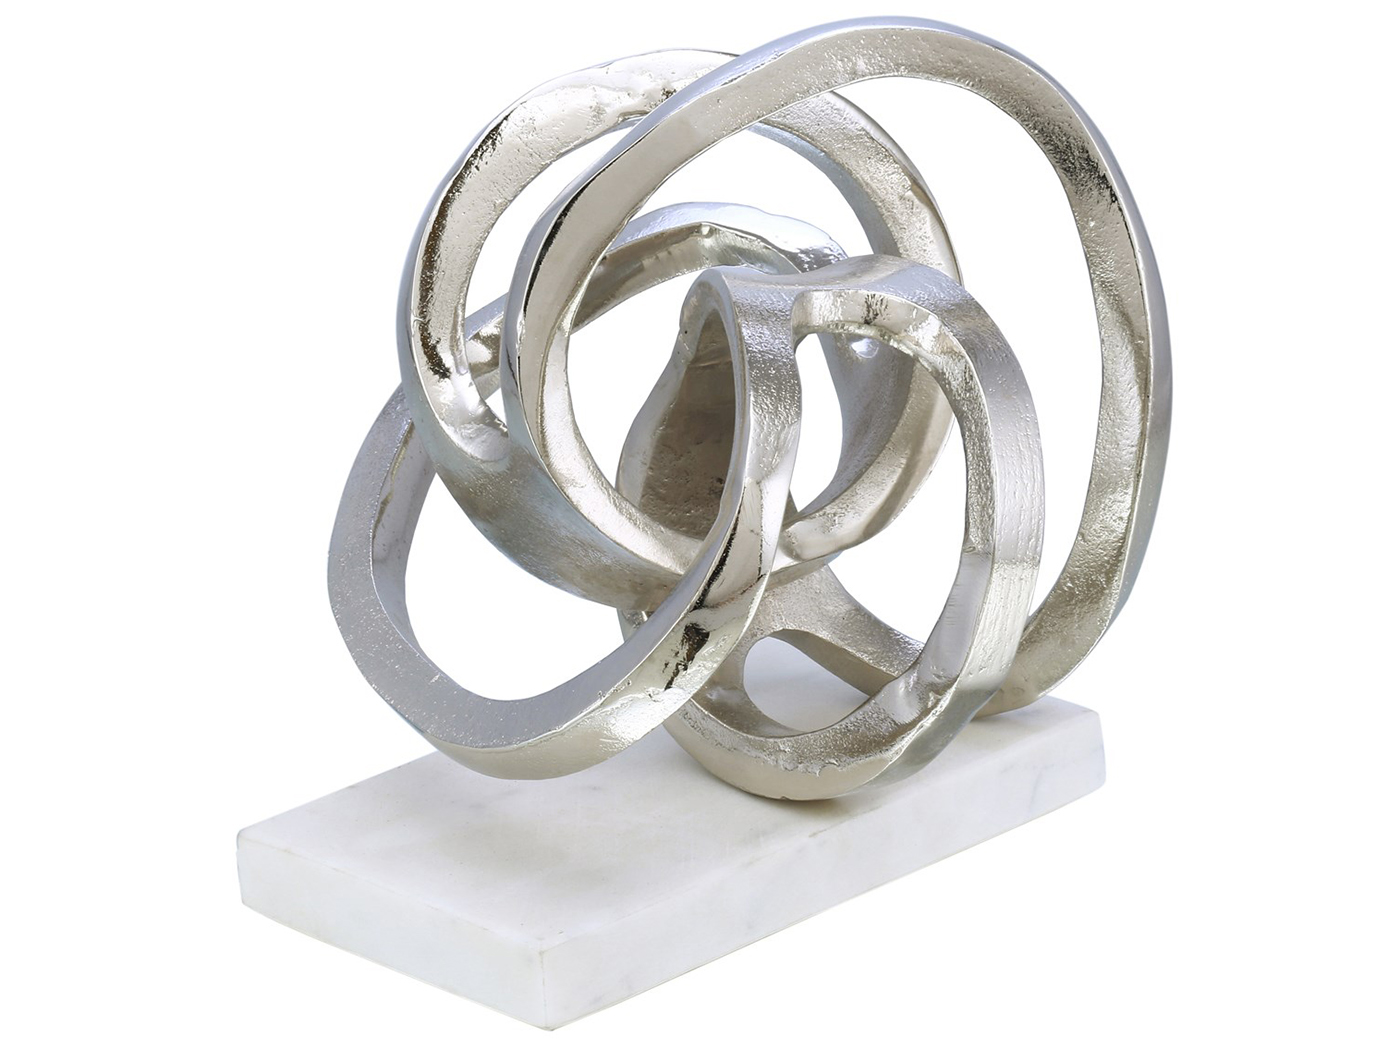 "Silver Swirl Sculpture on Marble Base 9""W x 9.5""H"